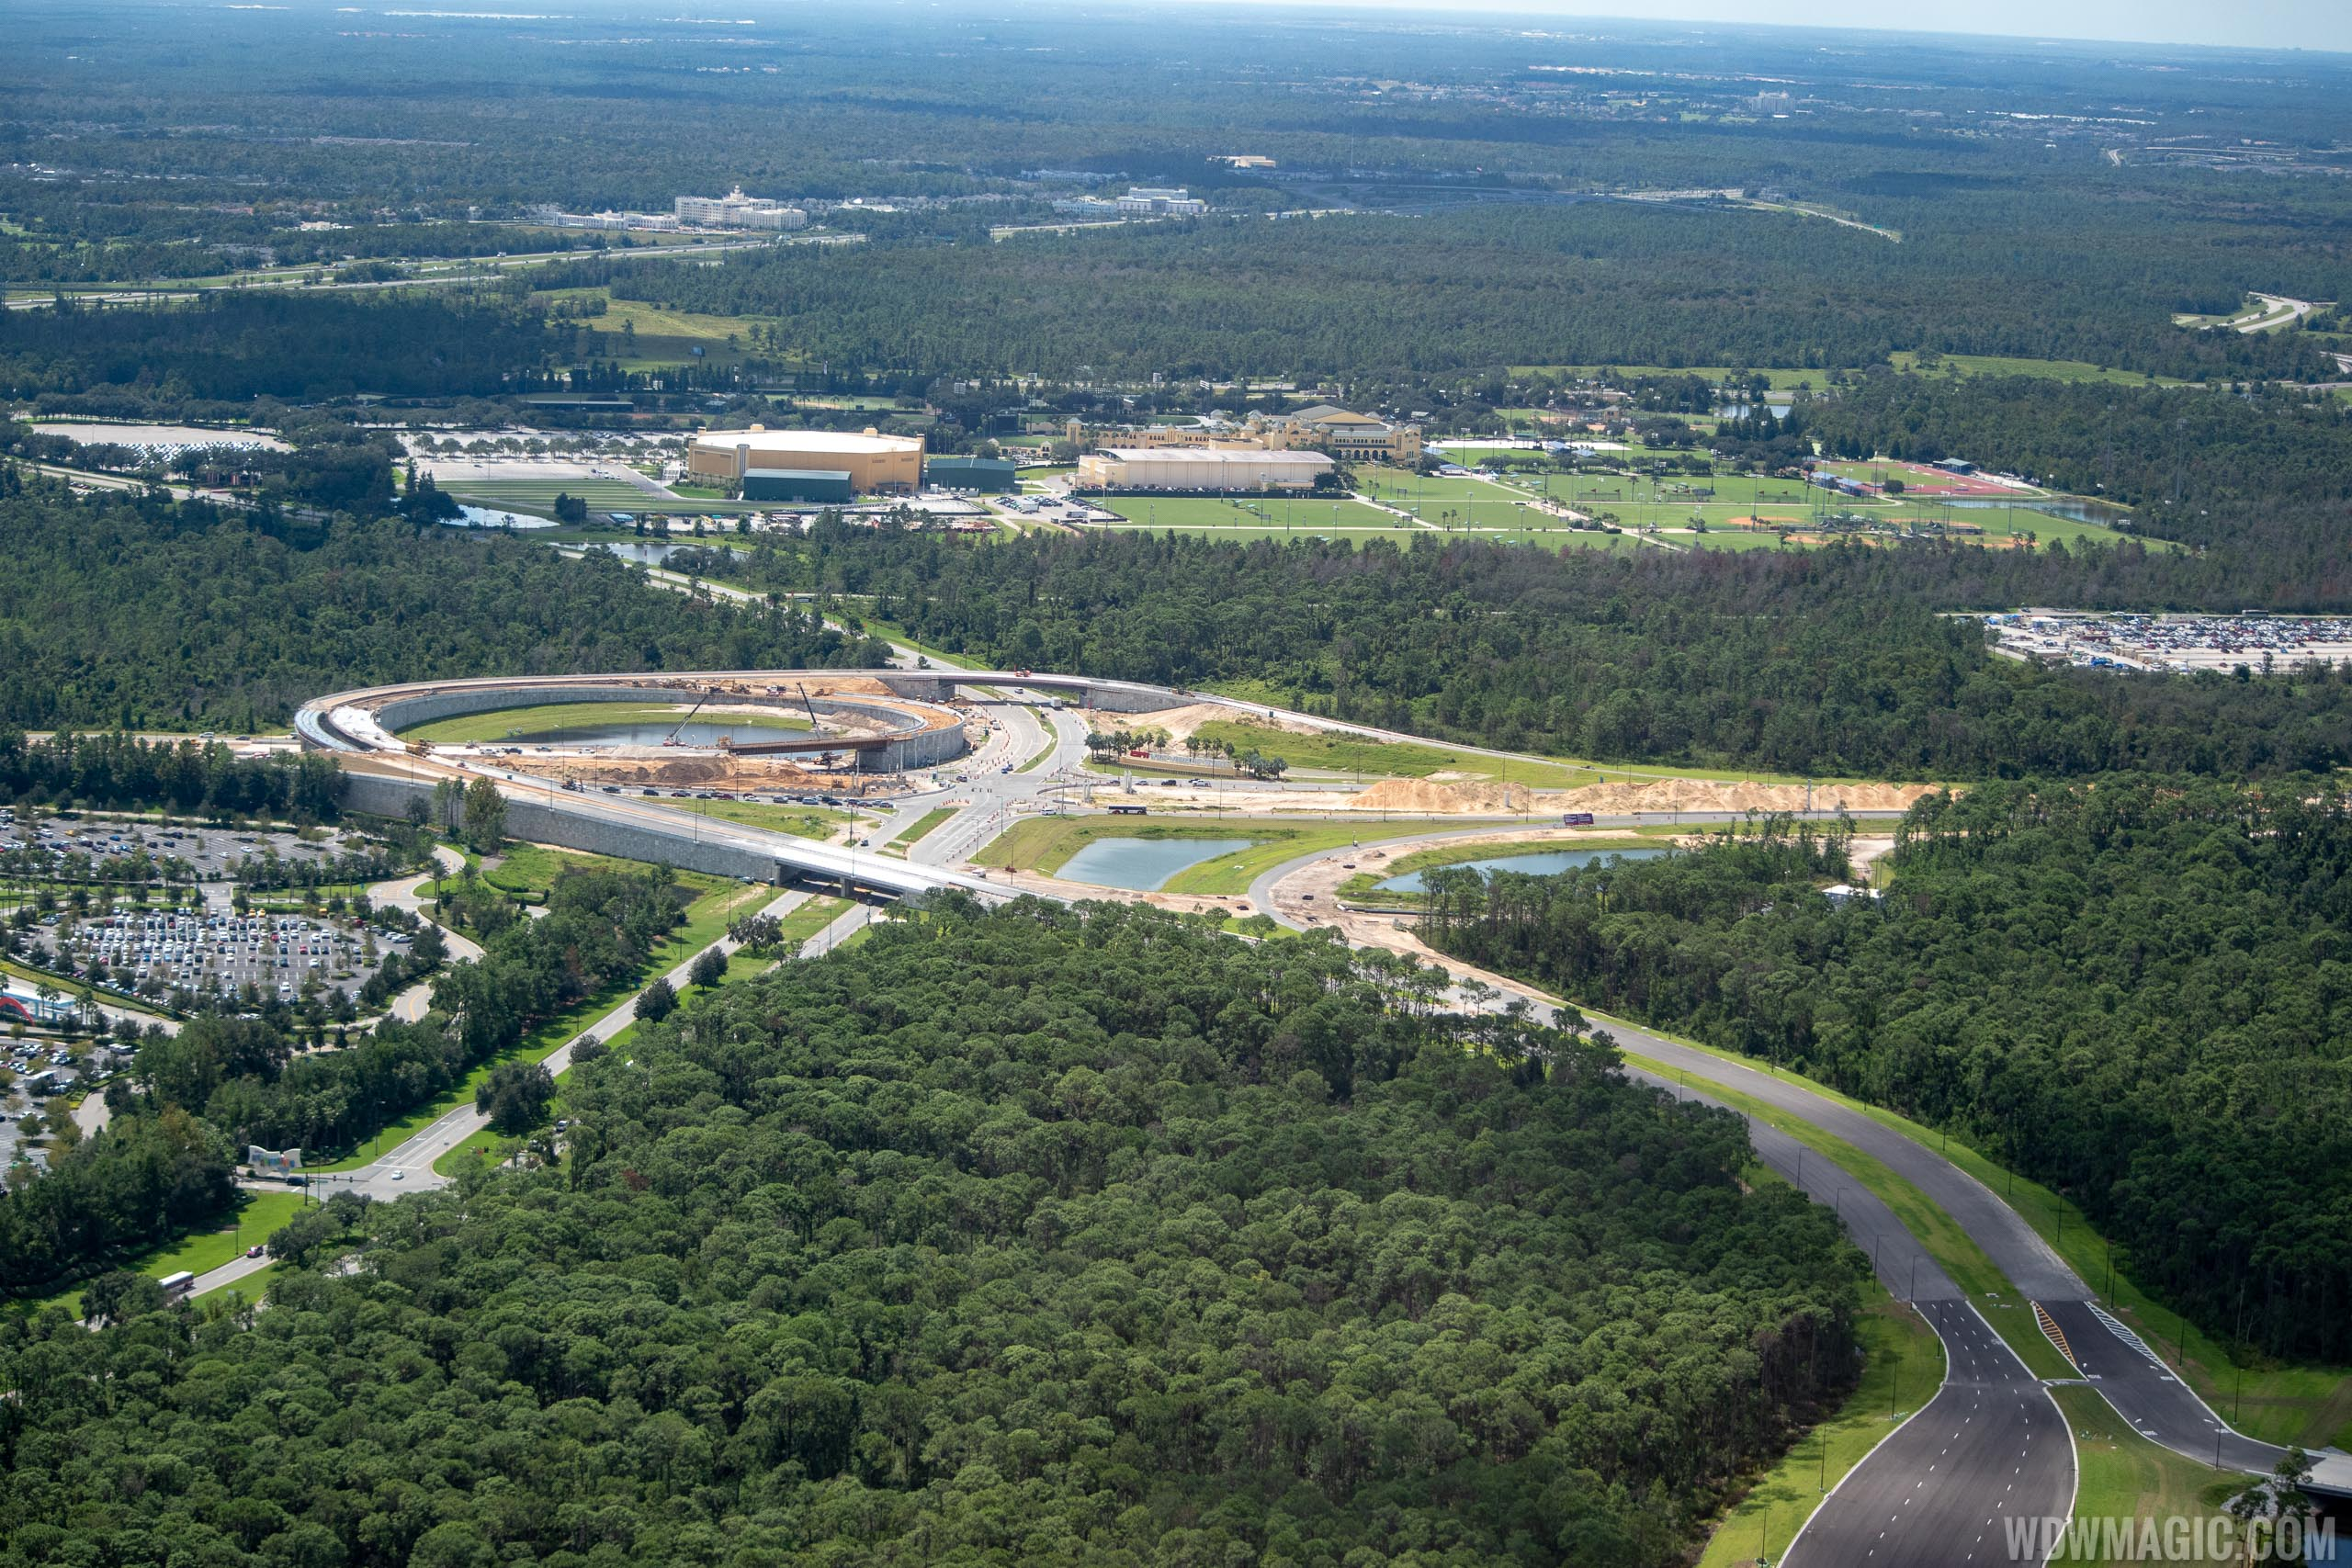 New Parking Plaza and entry road construction at Disney's Hollywood Studios